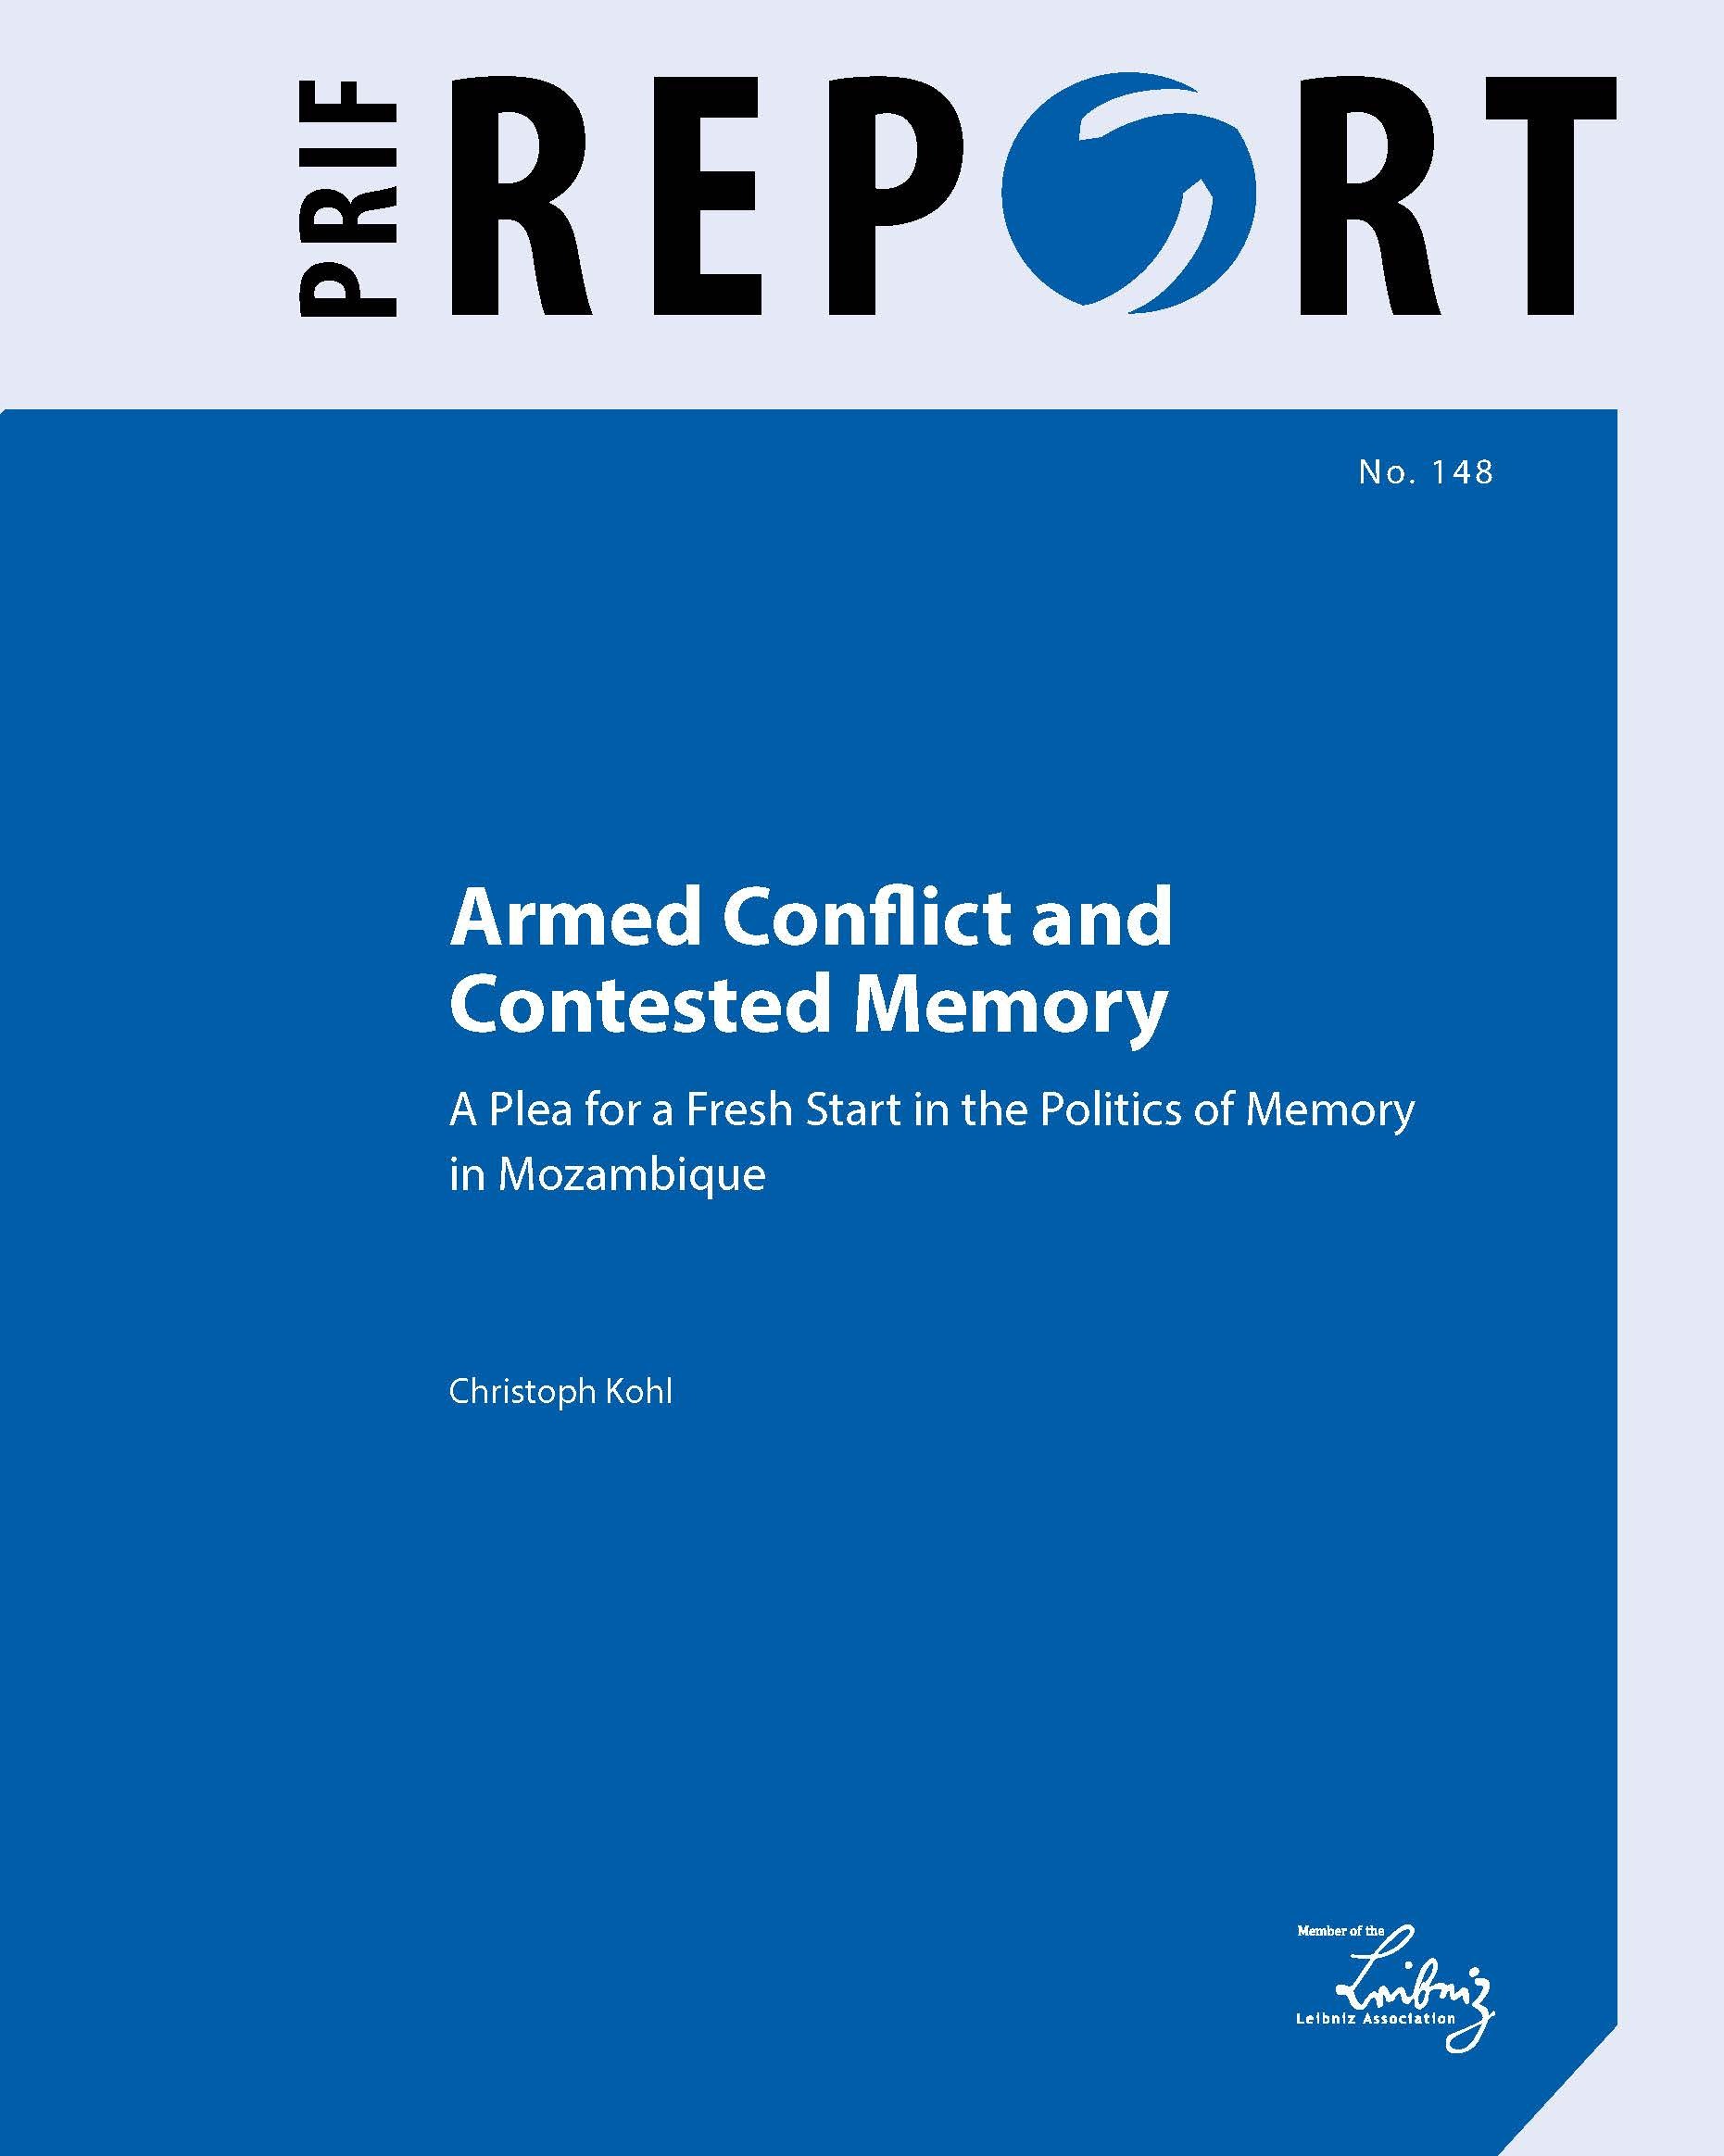 Download: Armed Conflict and Contested Memory